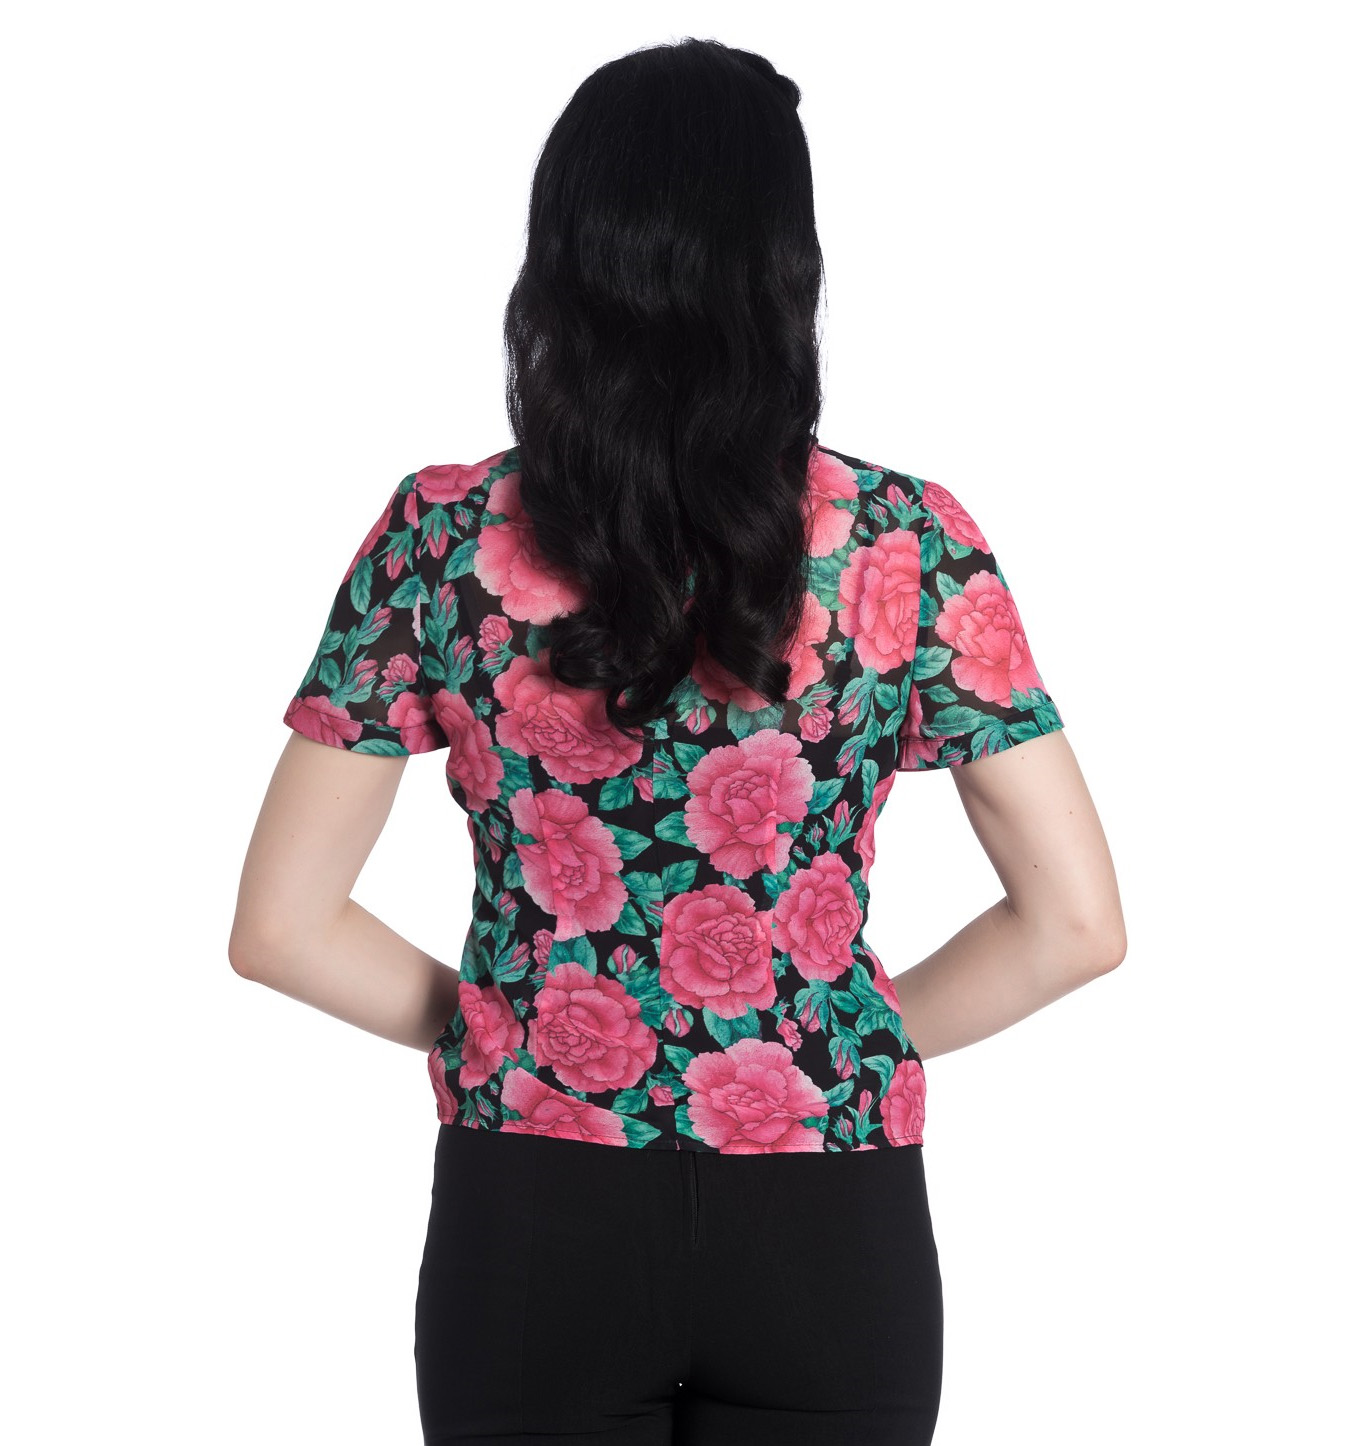 Hell-Bunny-Shirt-Top-Flowers-Roses-EDEN-ROSE-Black-Pink-Blouse-All-Sizes thumbnail 25